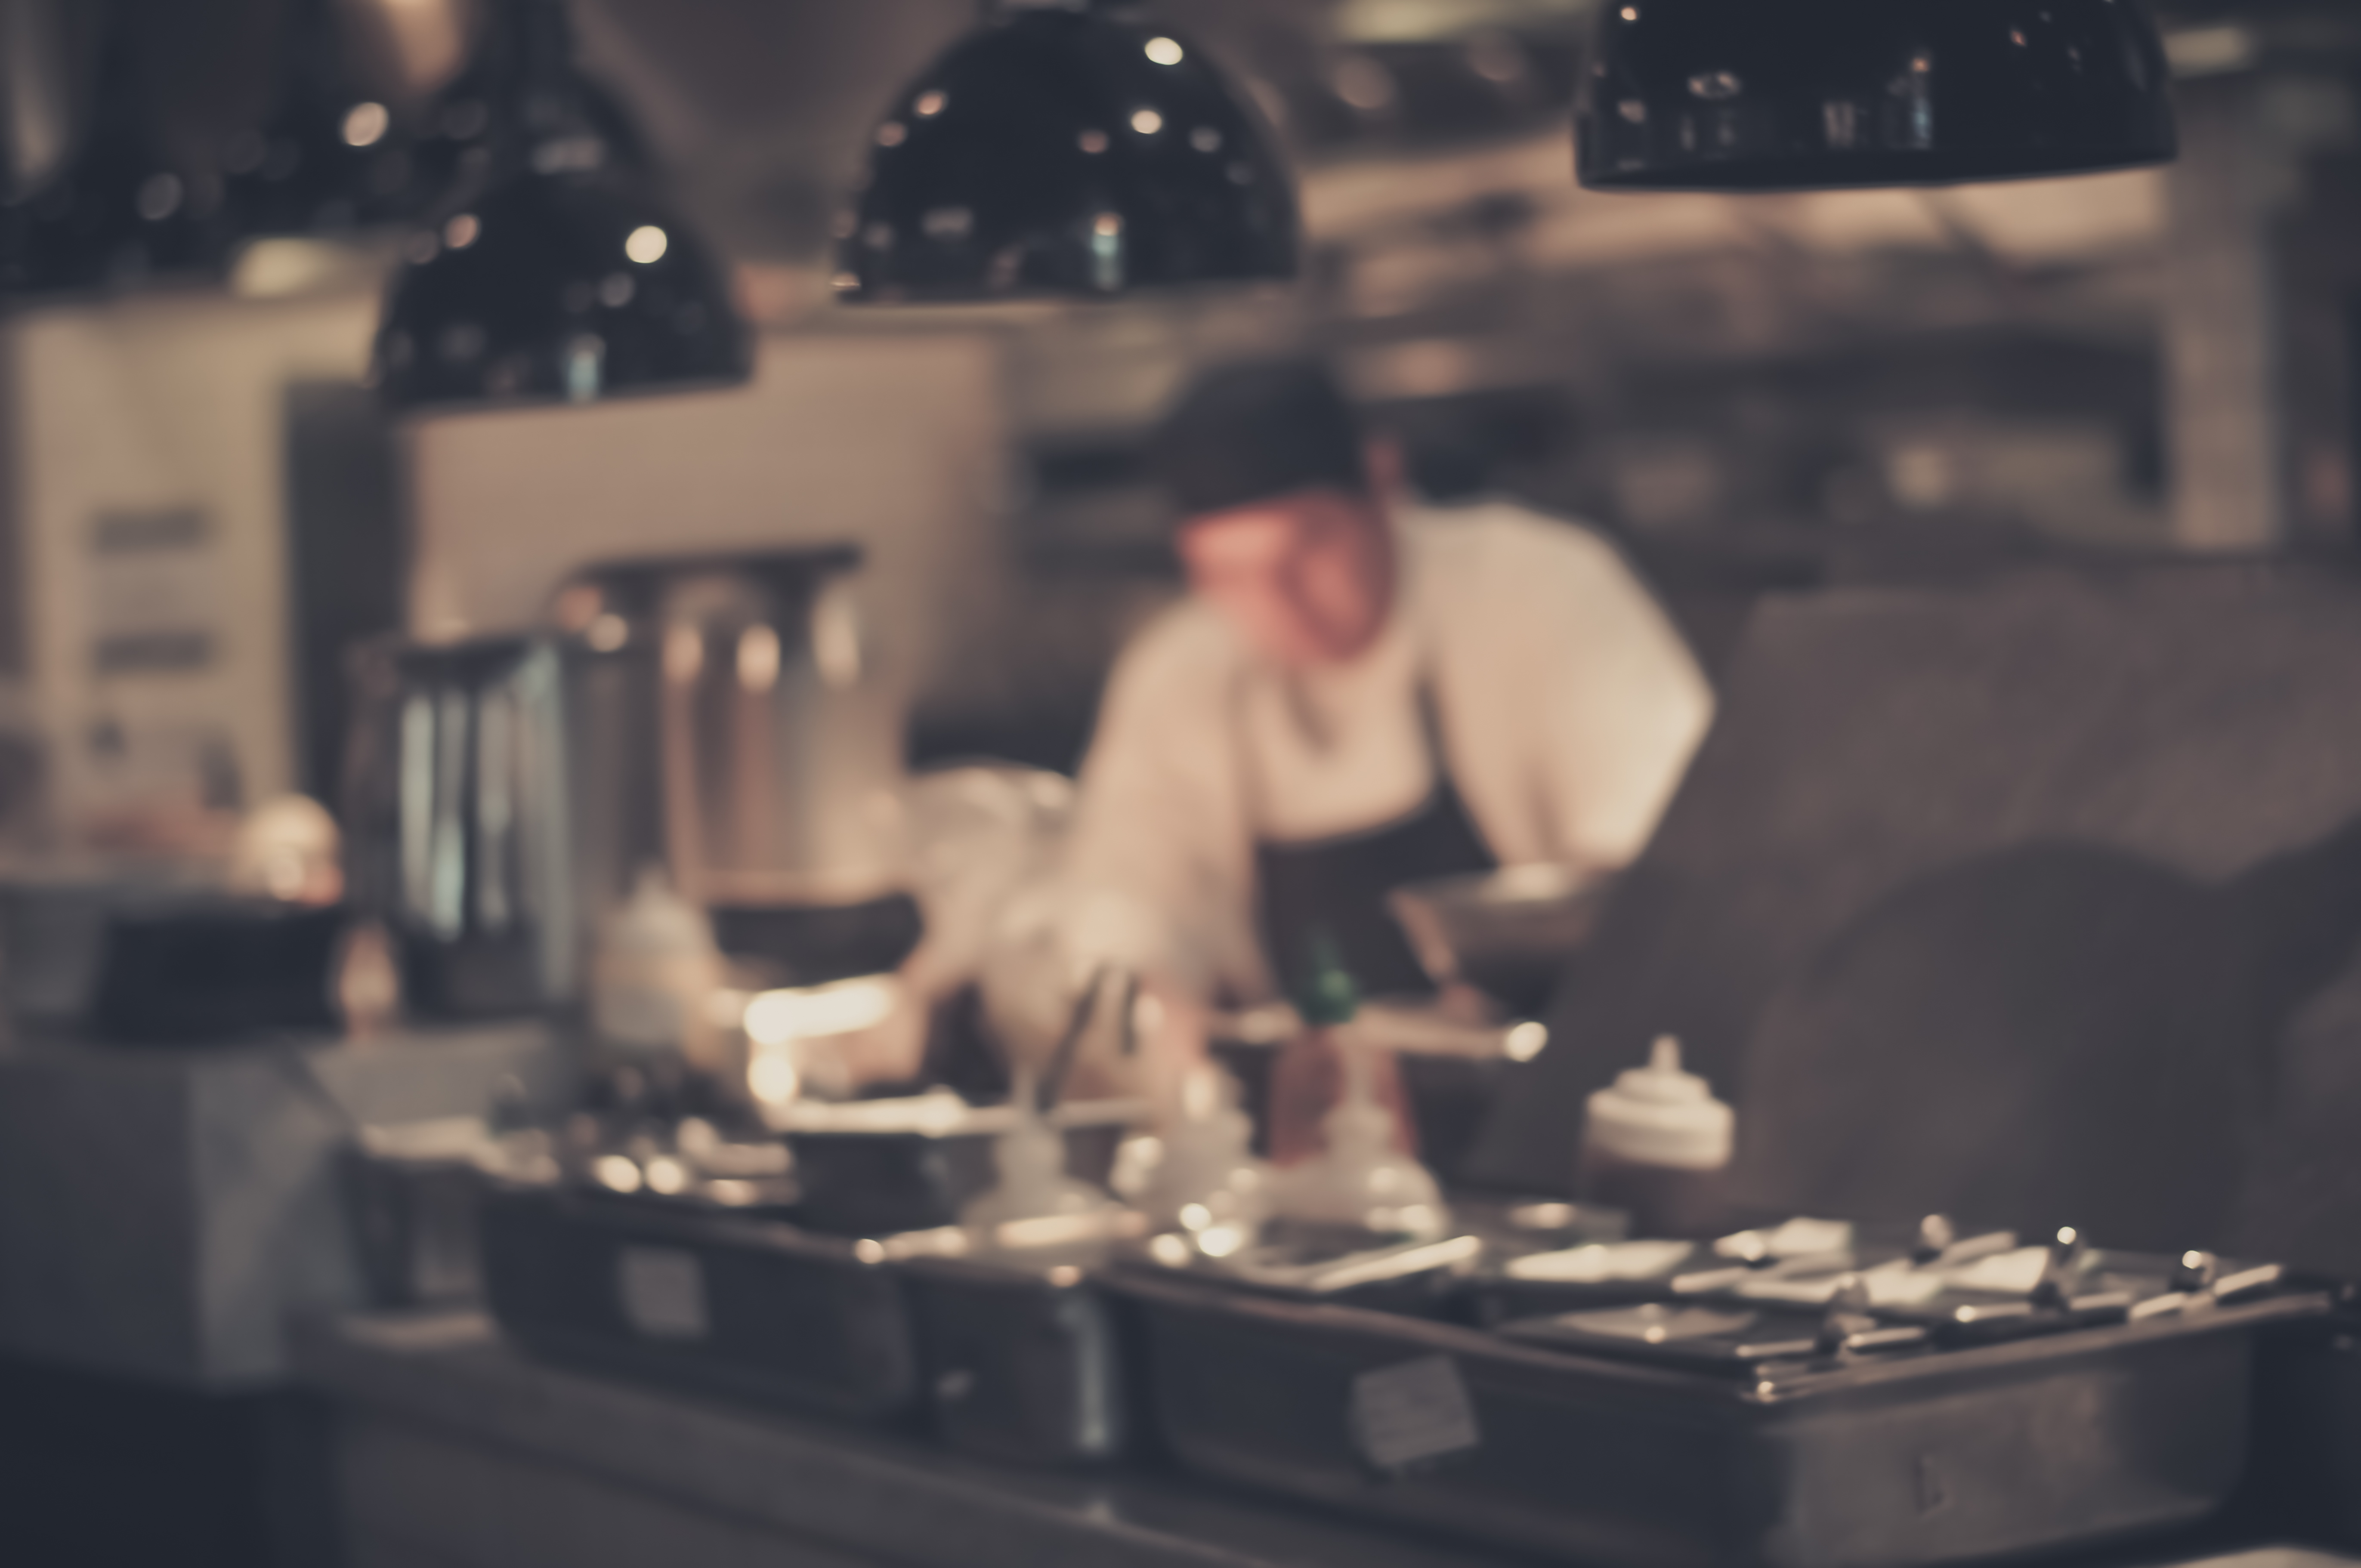 A blurred chef cooking in the open kitchen.